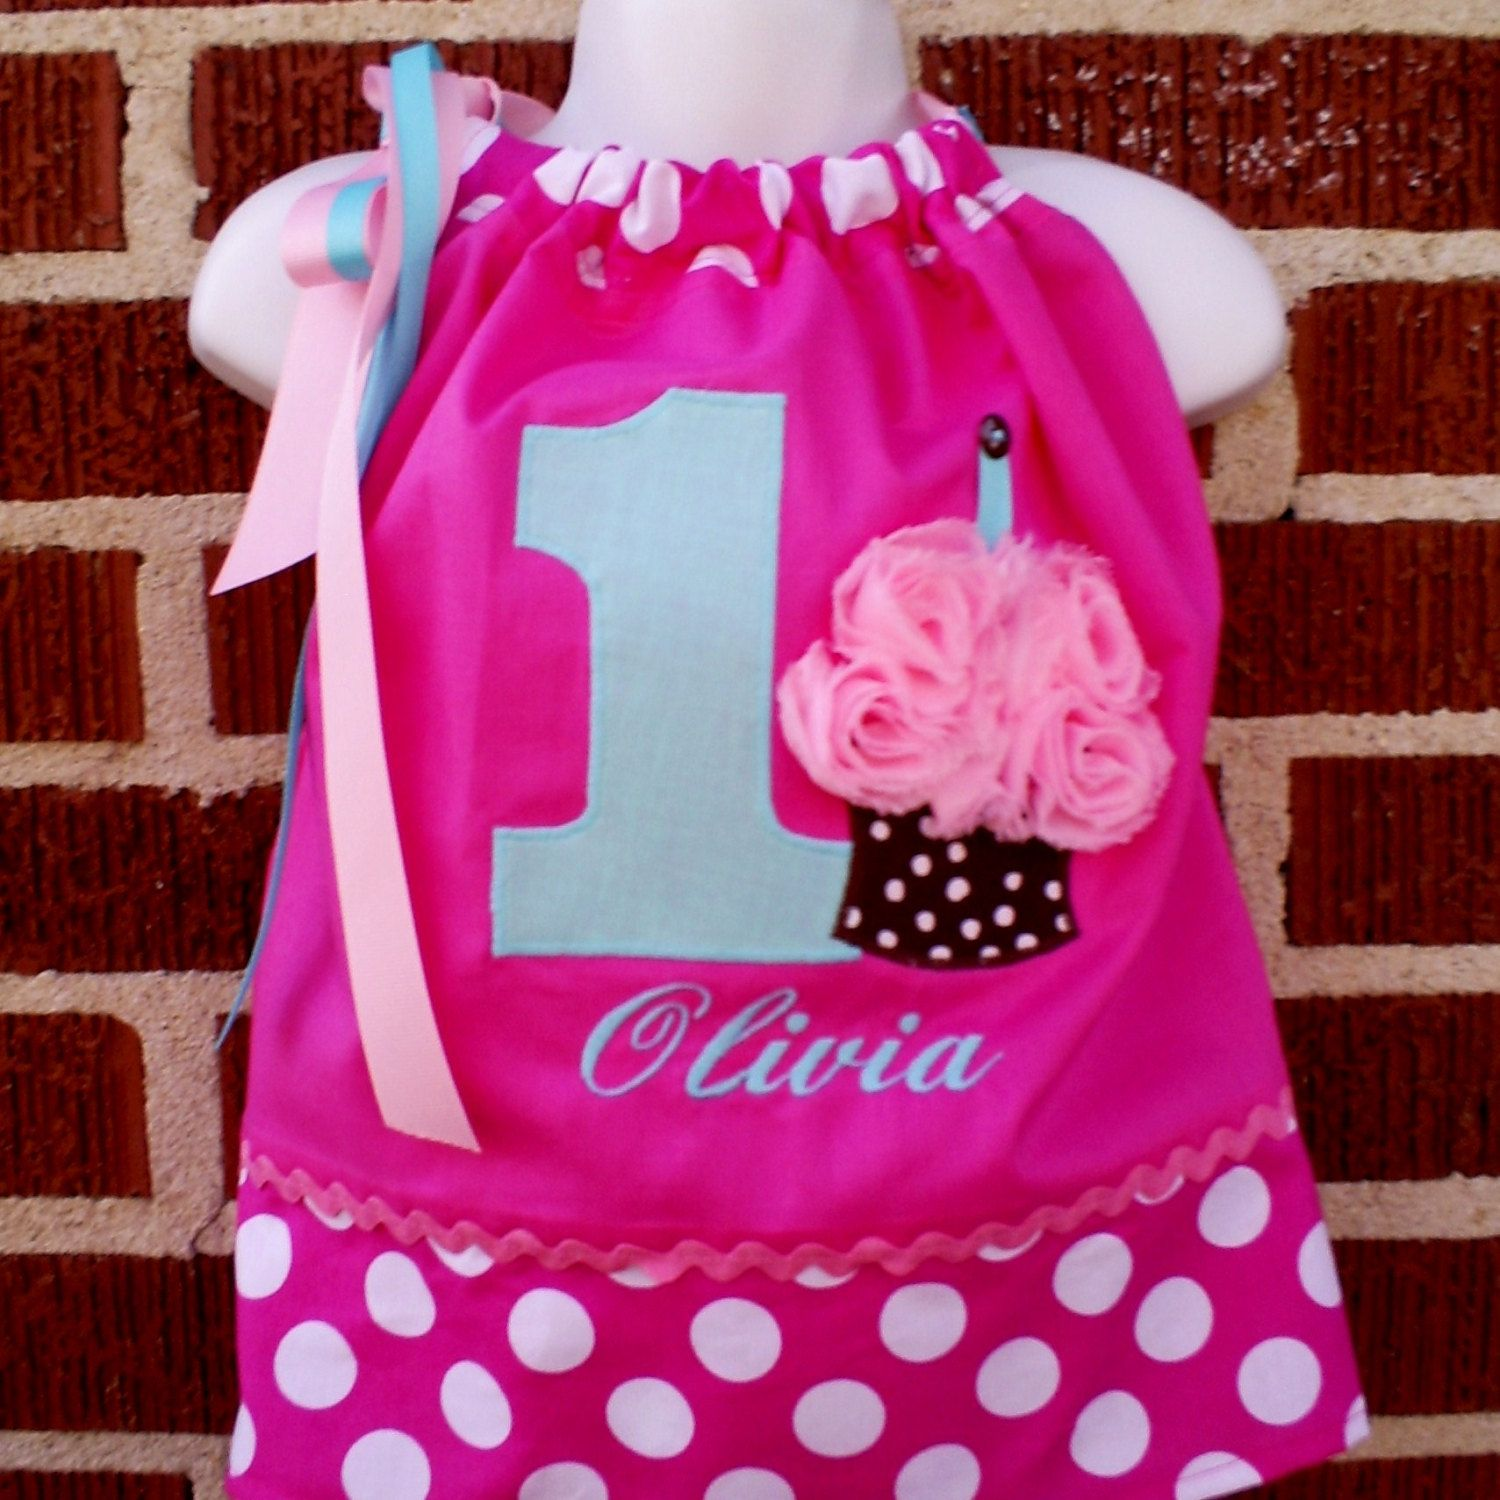 Pinkalicious Cupcake BIRTHDAY Party Pillowcase DRESS in Pinks/Aquas- Custom Personalized 9 mo 12 mo 18 mo 24mo/2T 3T 4T 5T 1st 2nd 3rd 4th. $32.00, via Etsy.